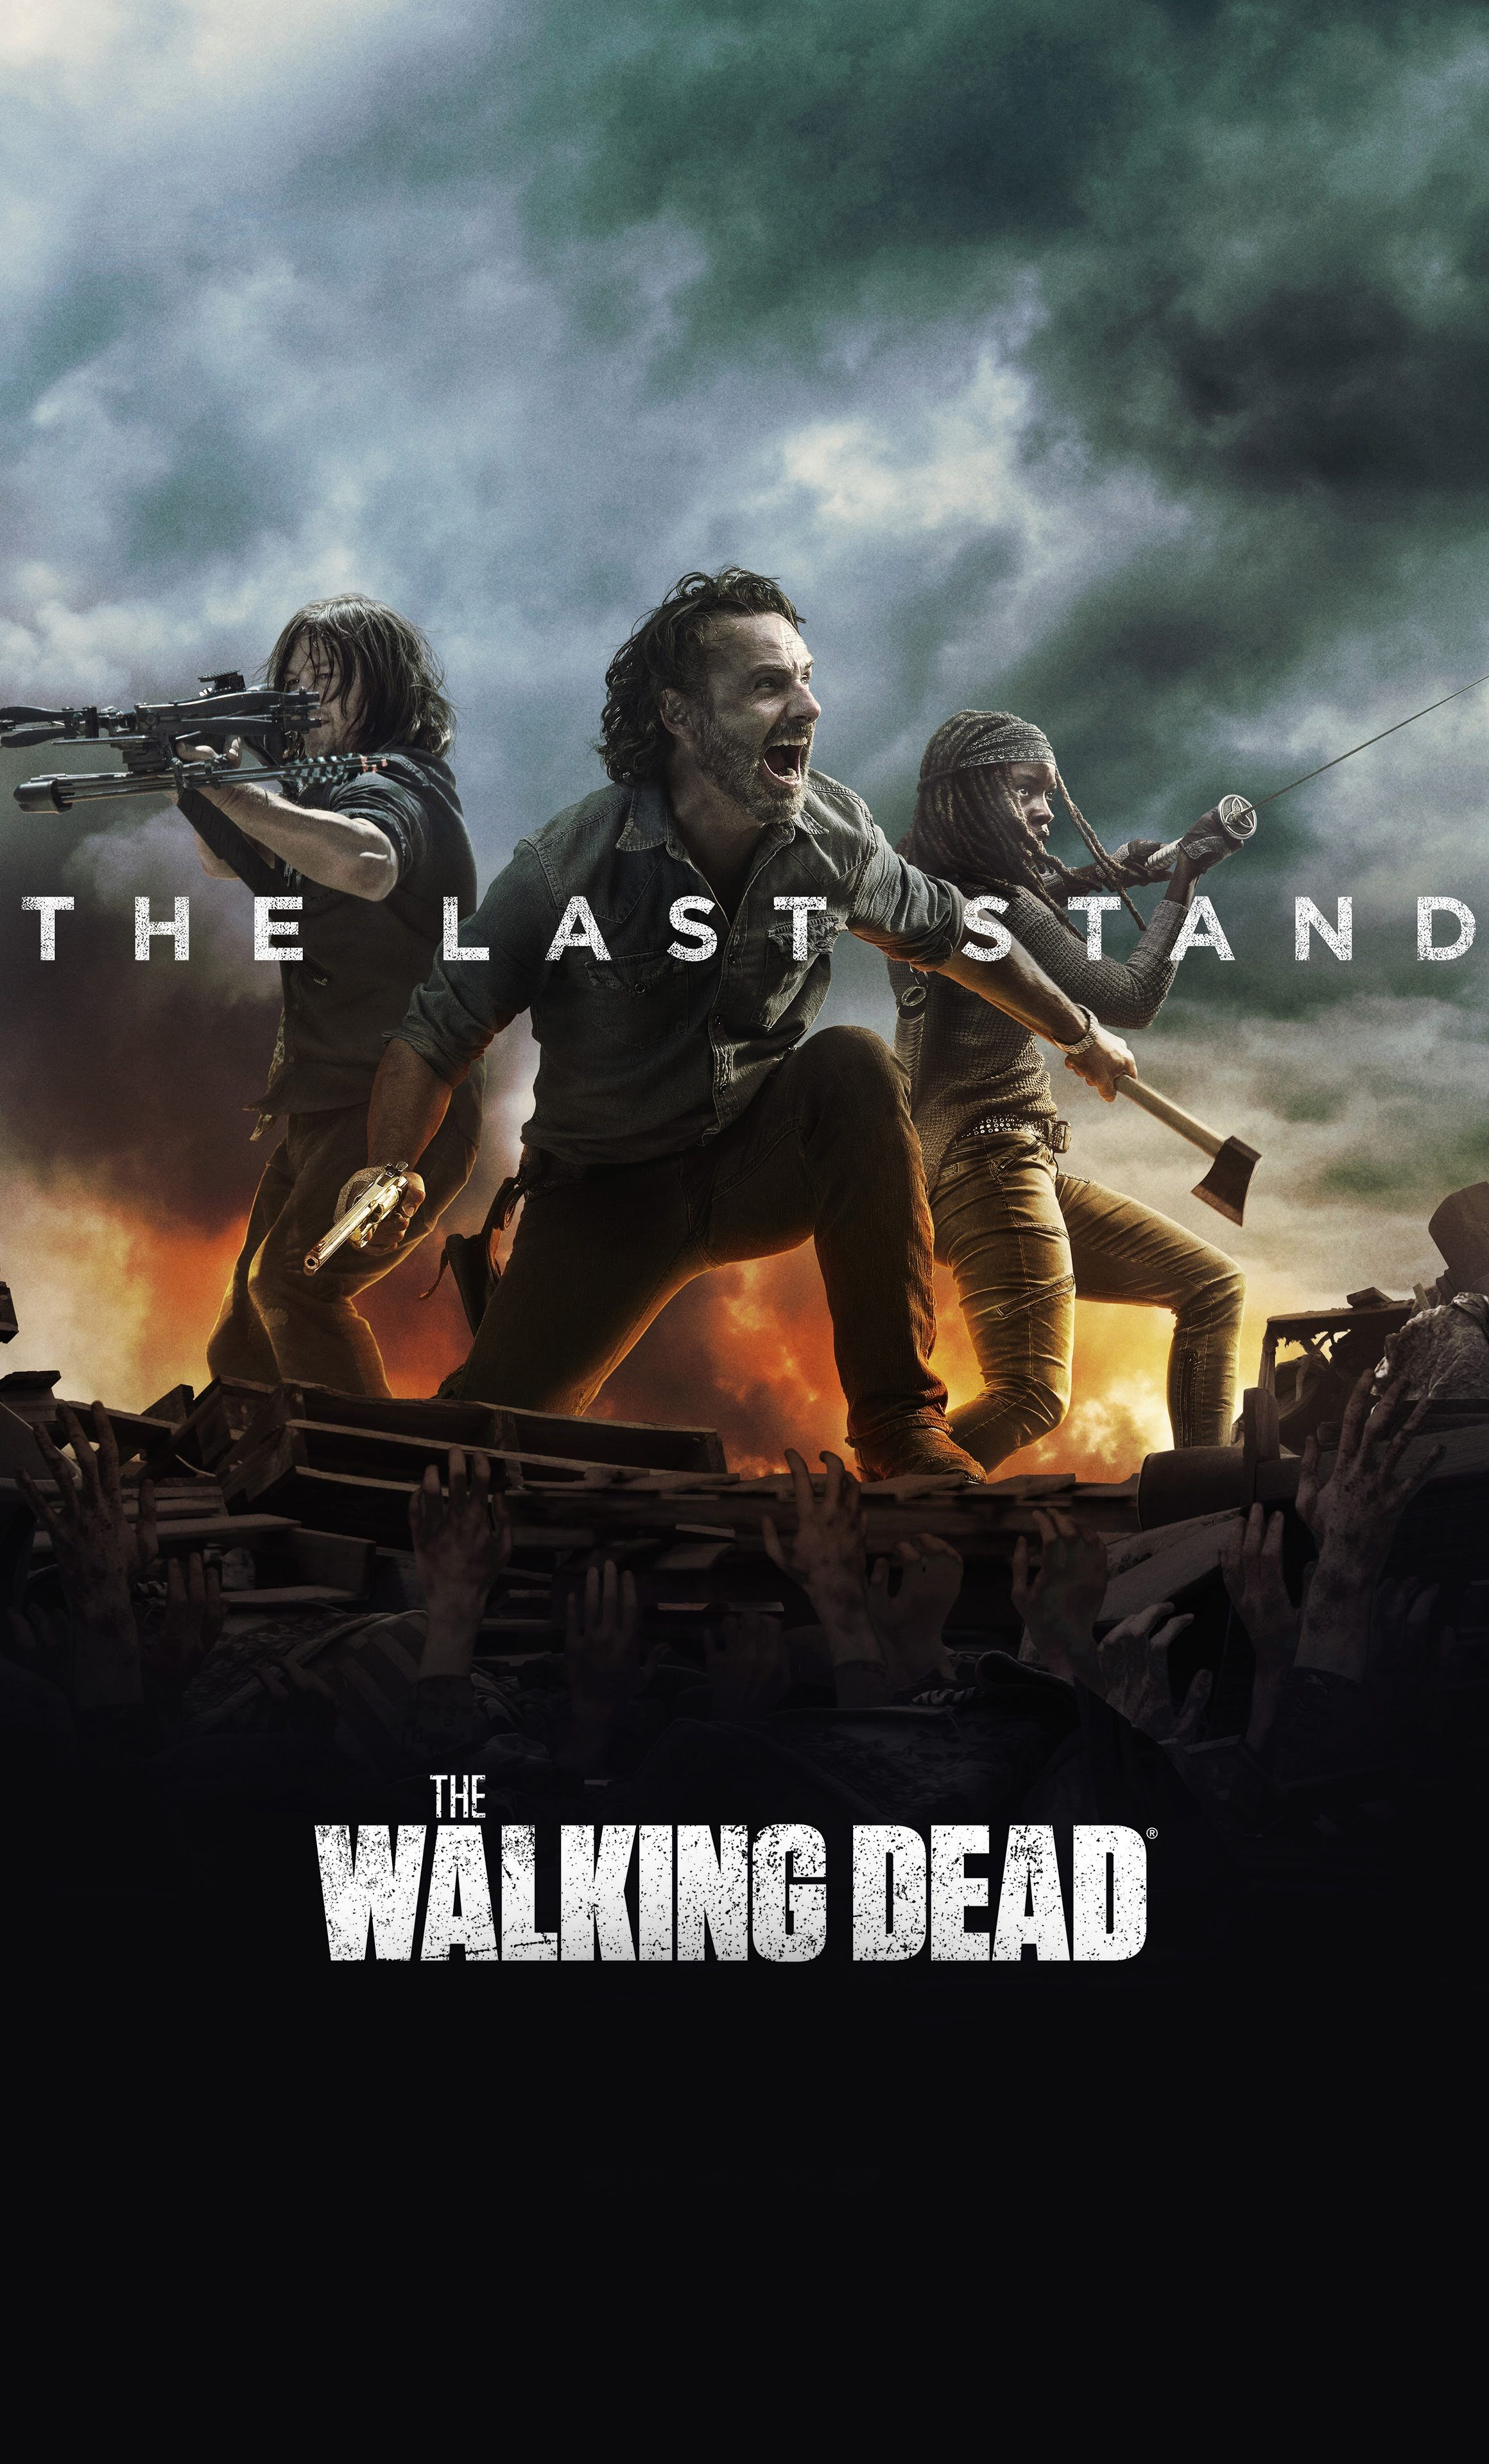 The Last Stand The walking dead poster